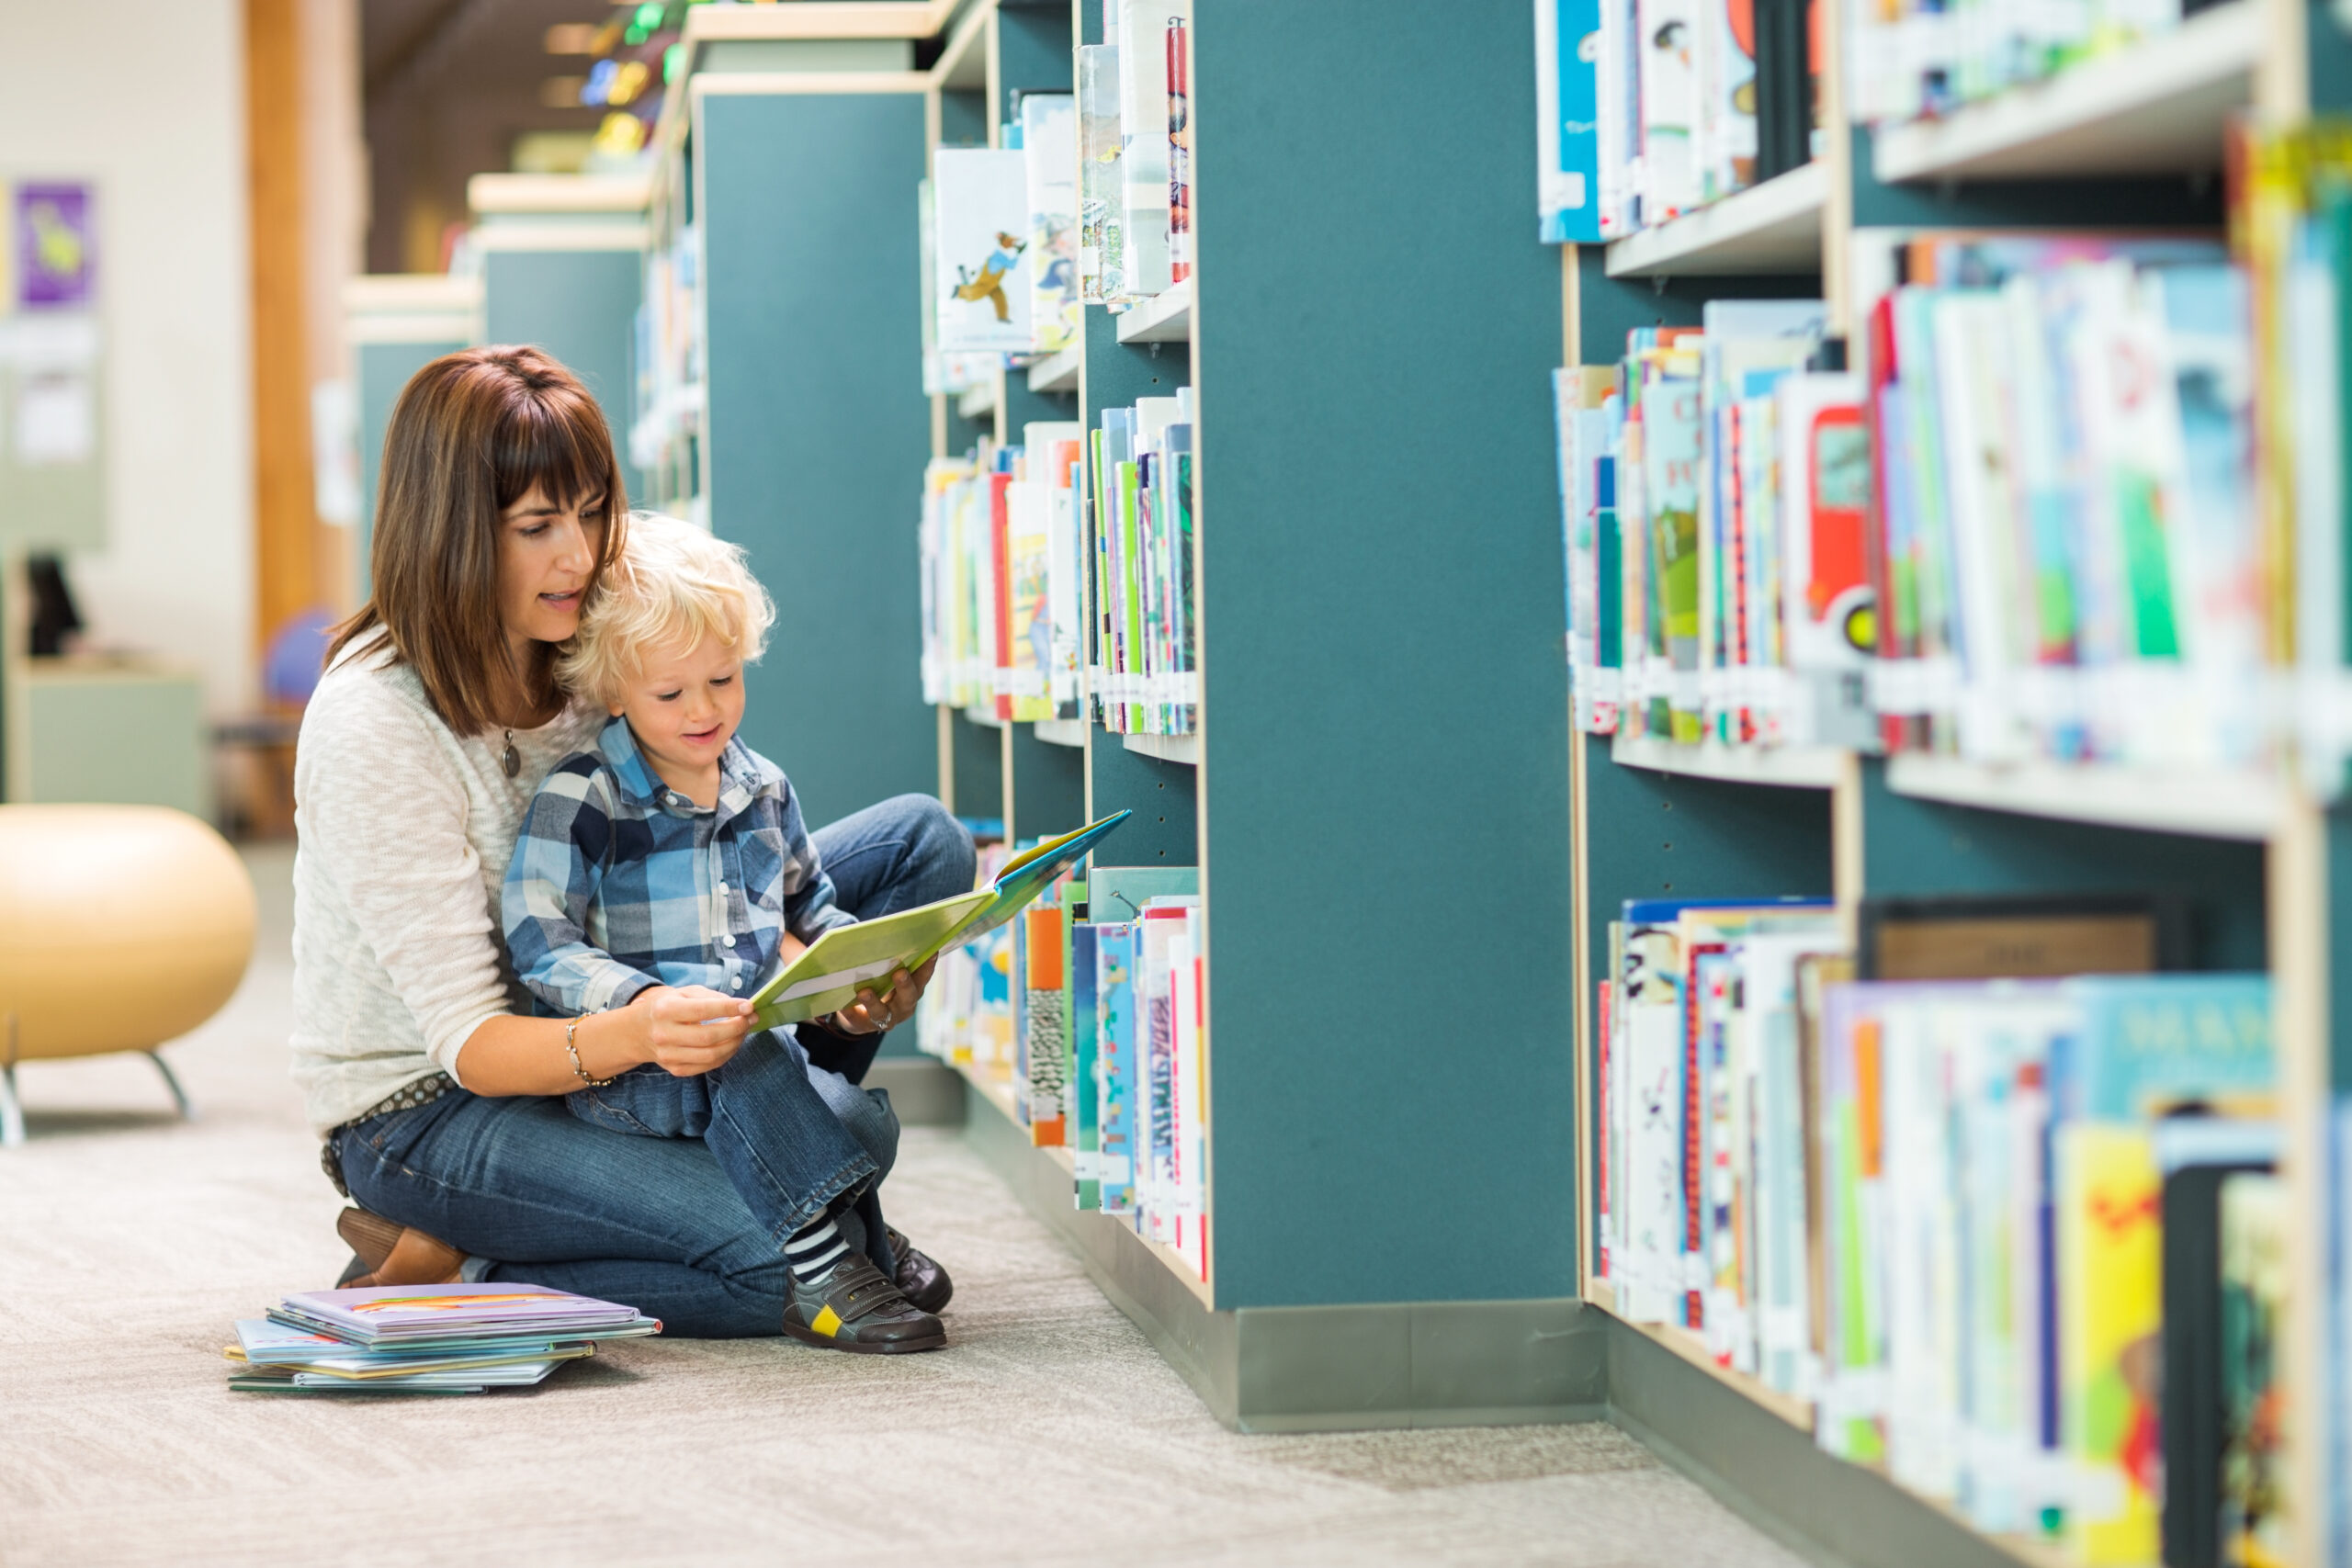 Mother and child reading books in a library setting